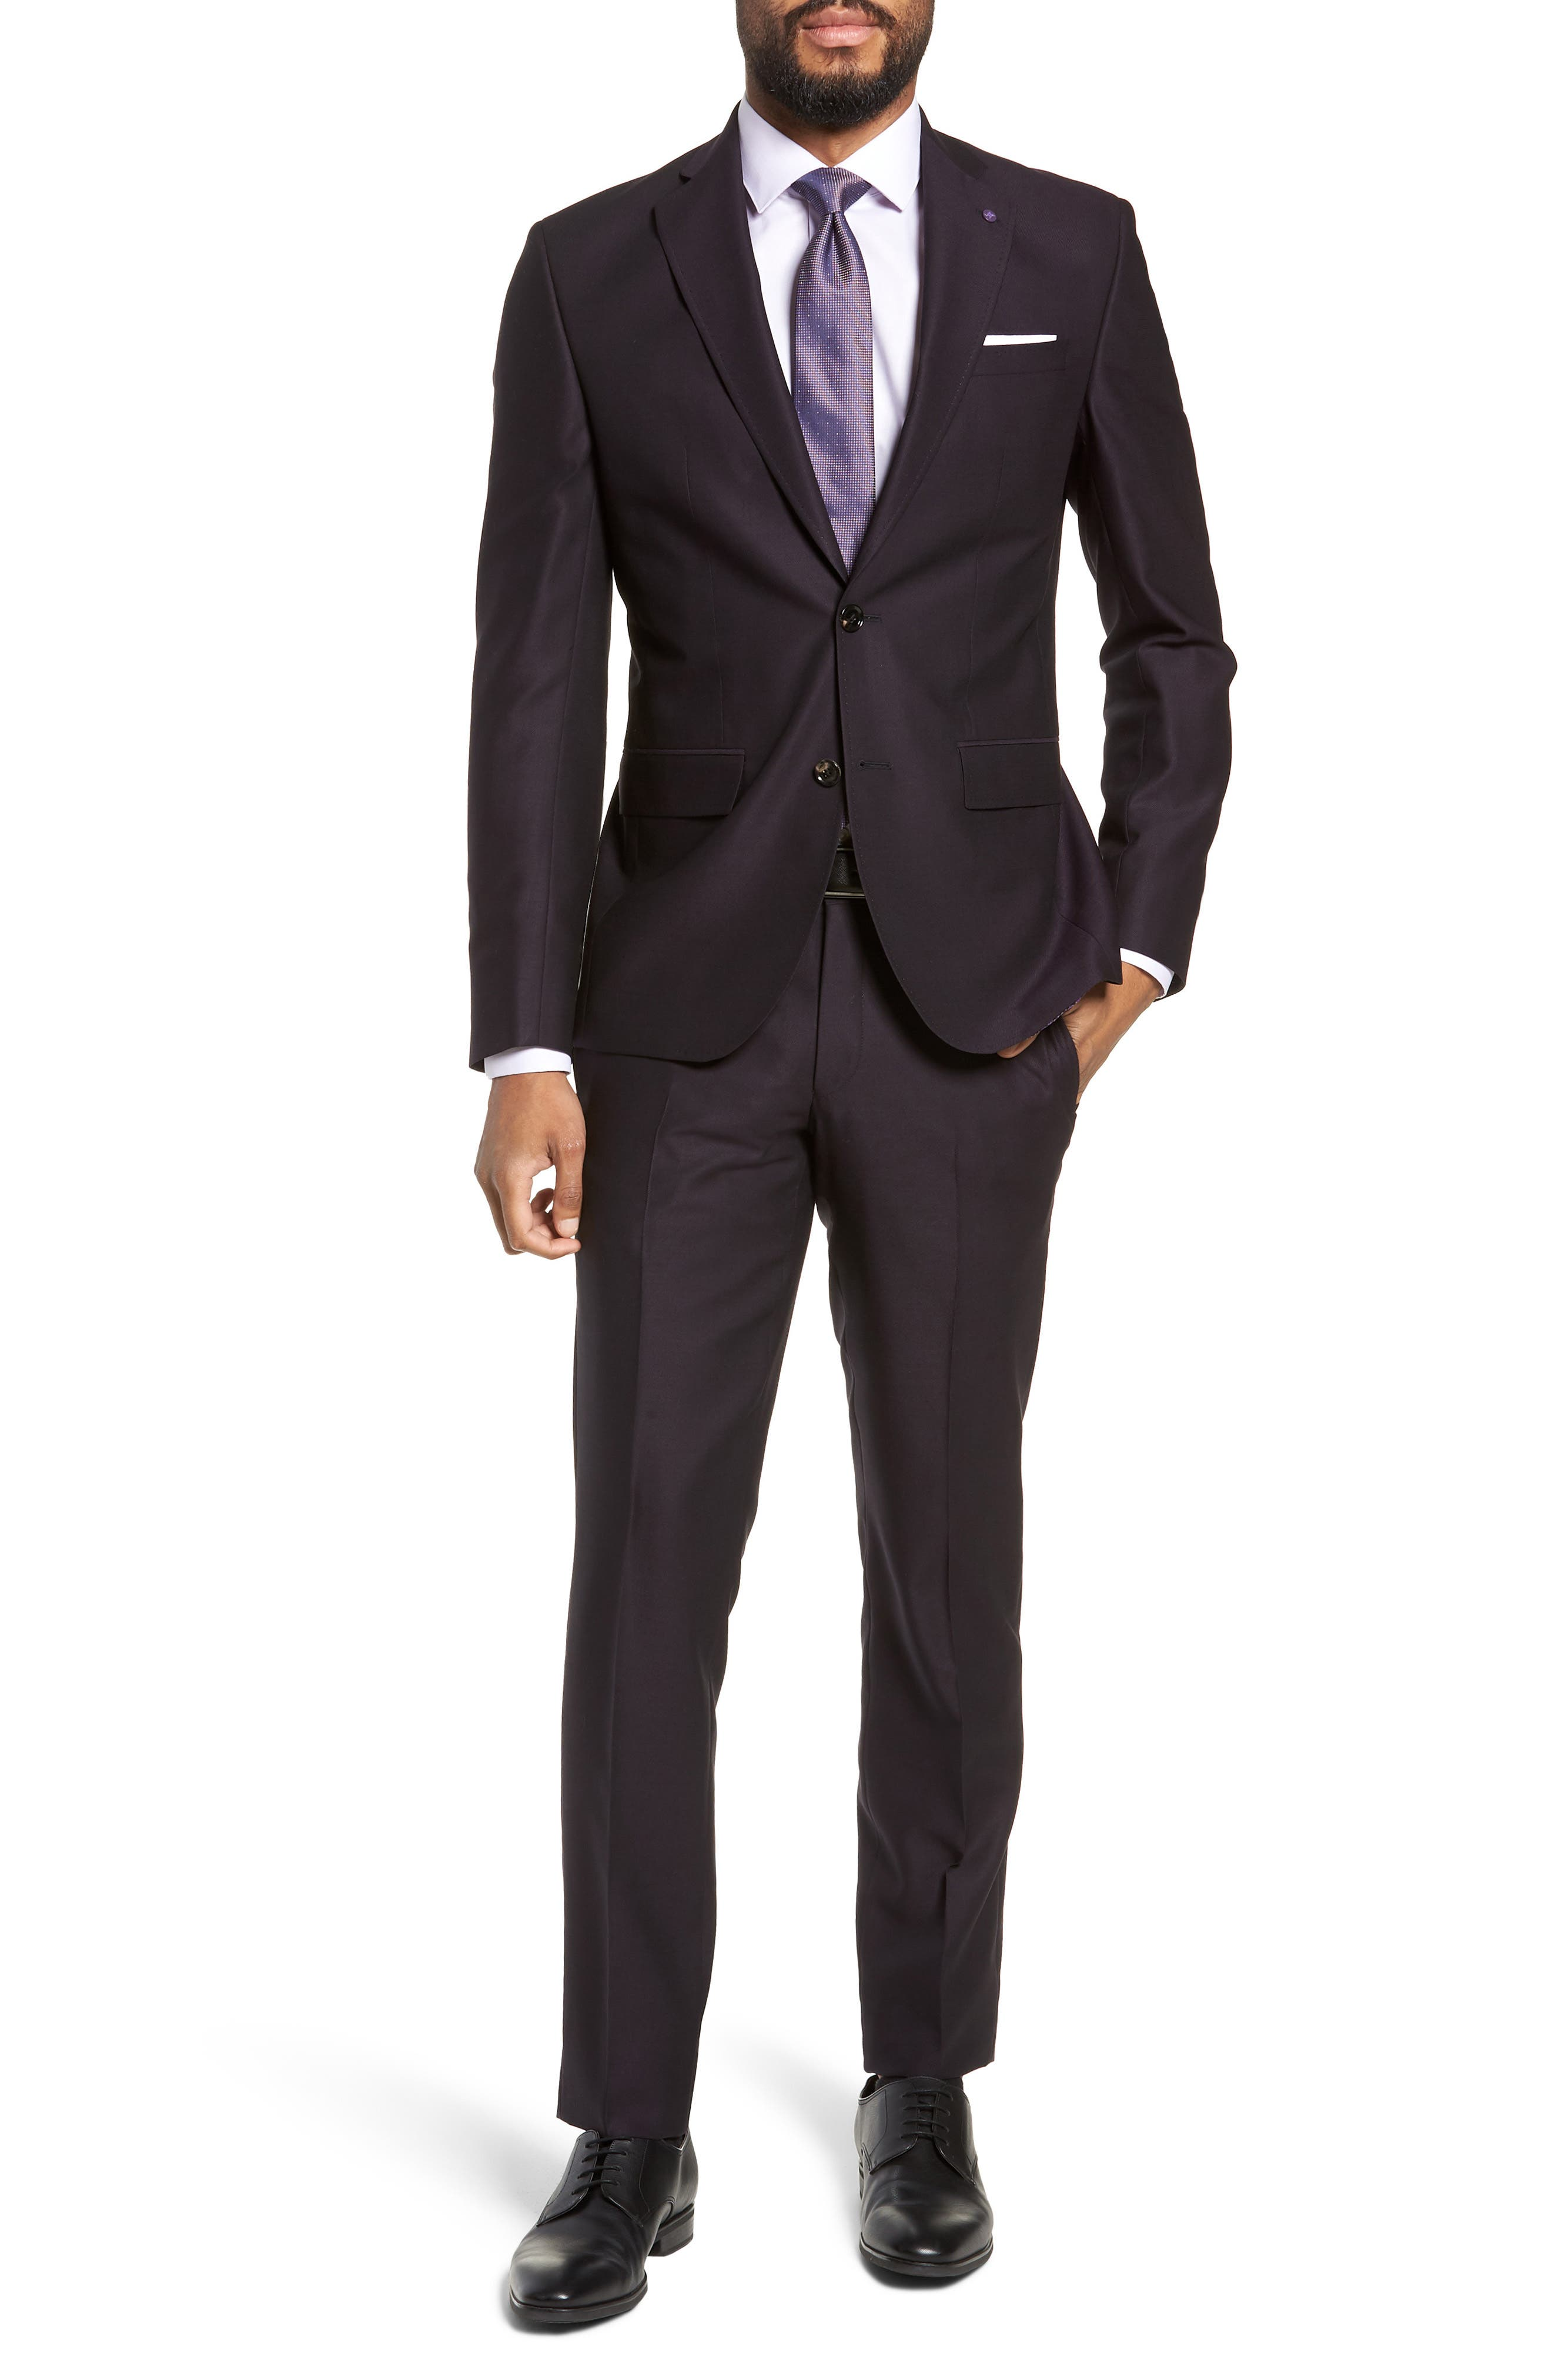 Roger Extra Trim Fit Solid Wool Suit,                         Main,                         color, DEEP EGGPLANT